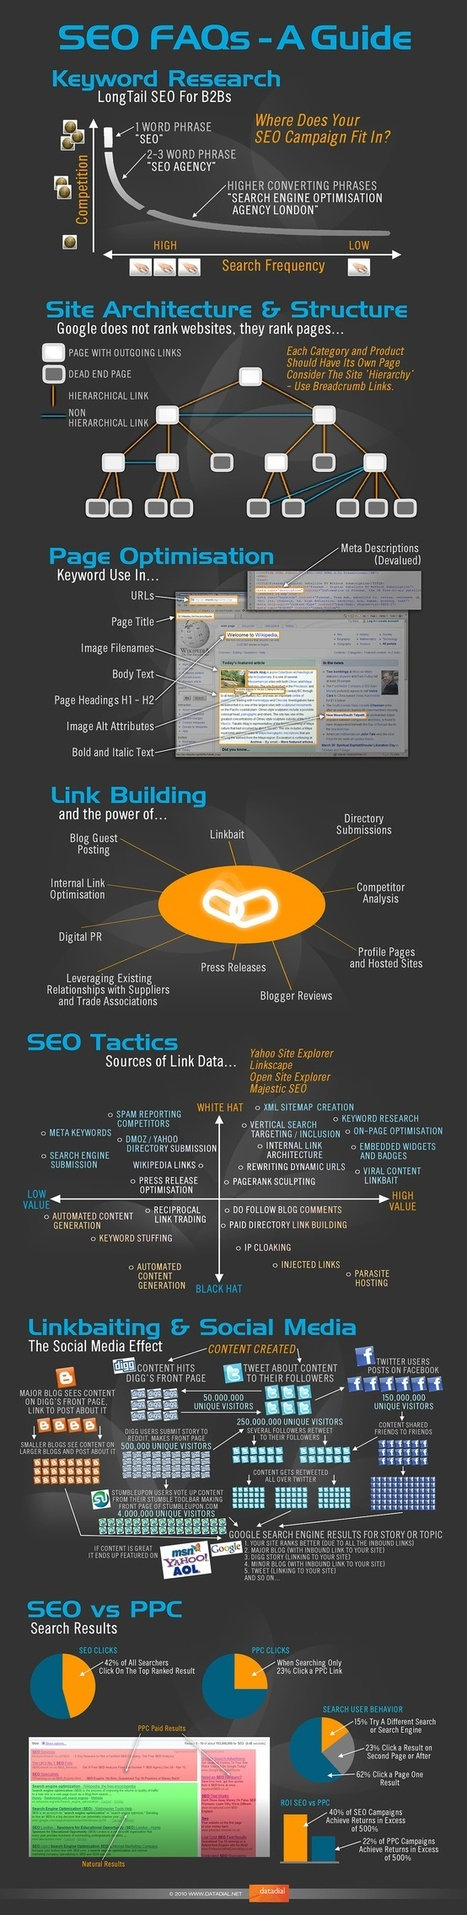 SEO FAQ's Guide [Infographic] | Dyslexia, Literacy, and New-Media Literacy | Scoop.it